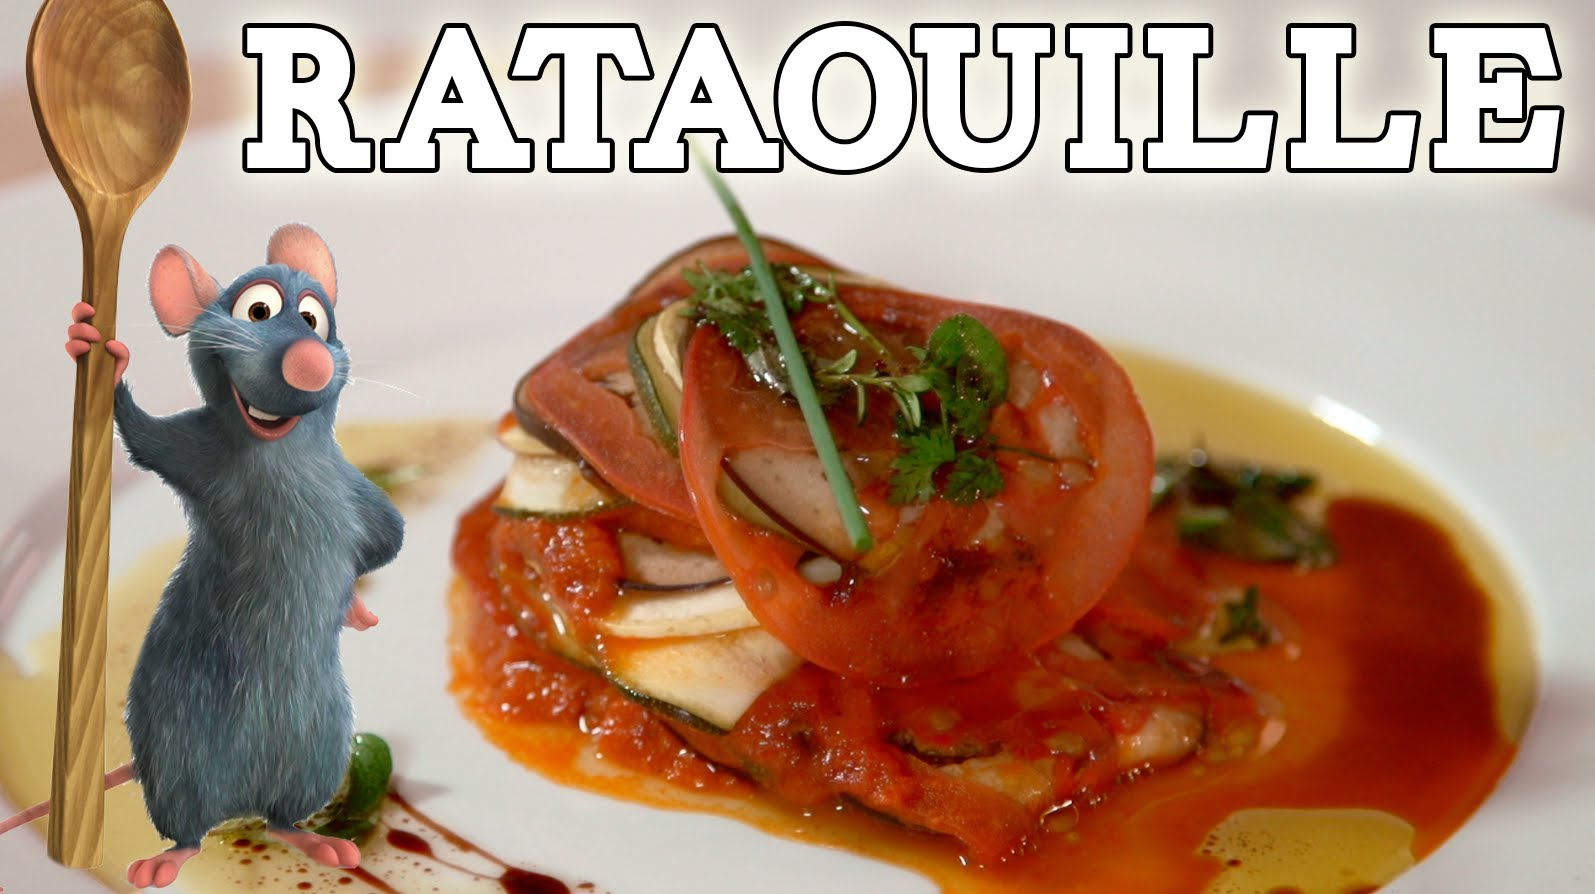 How to Make Ratatouille from the Movie 'Ratatouille'